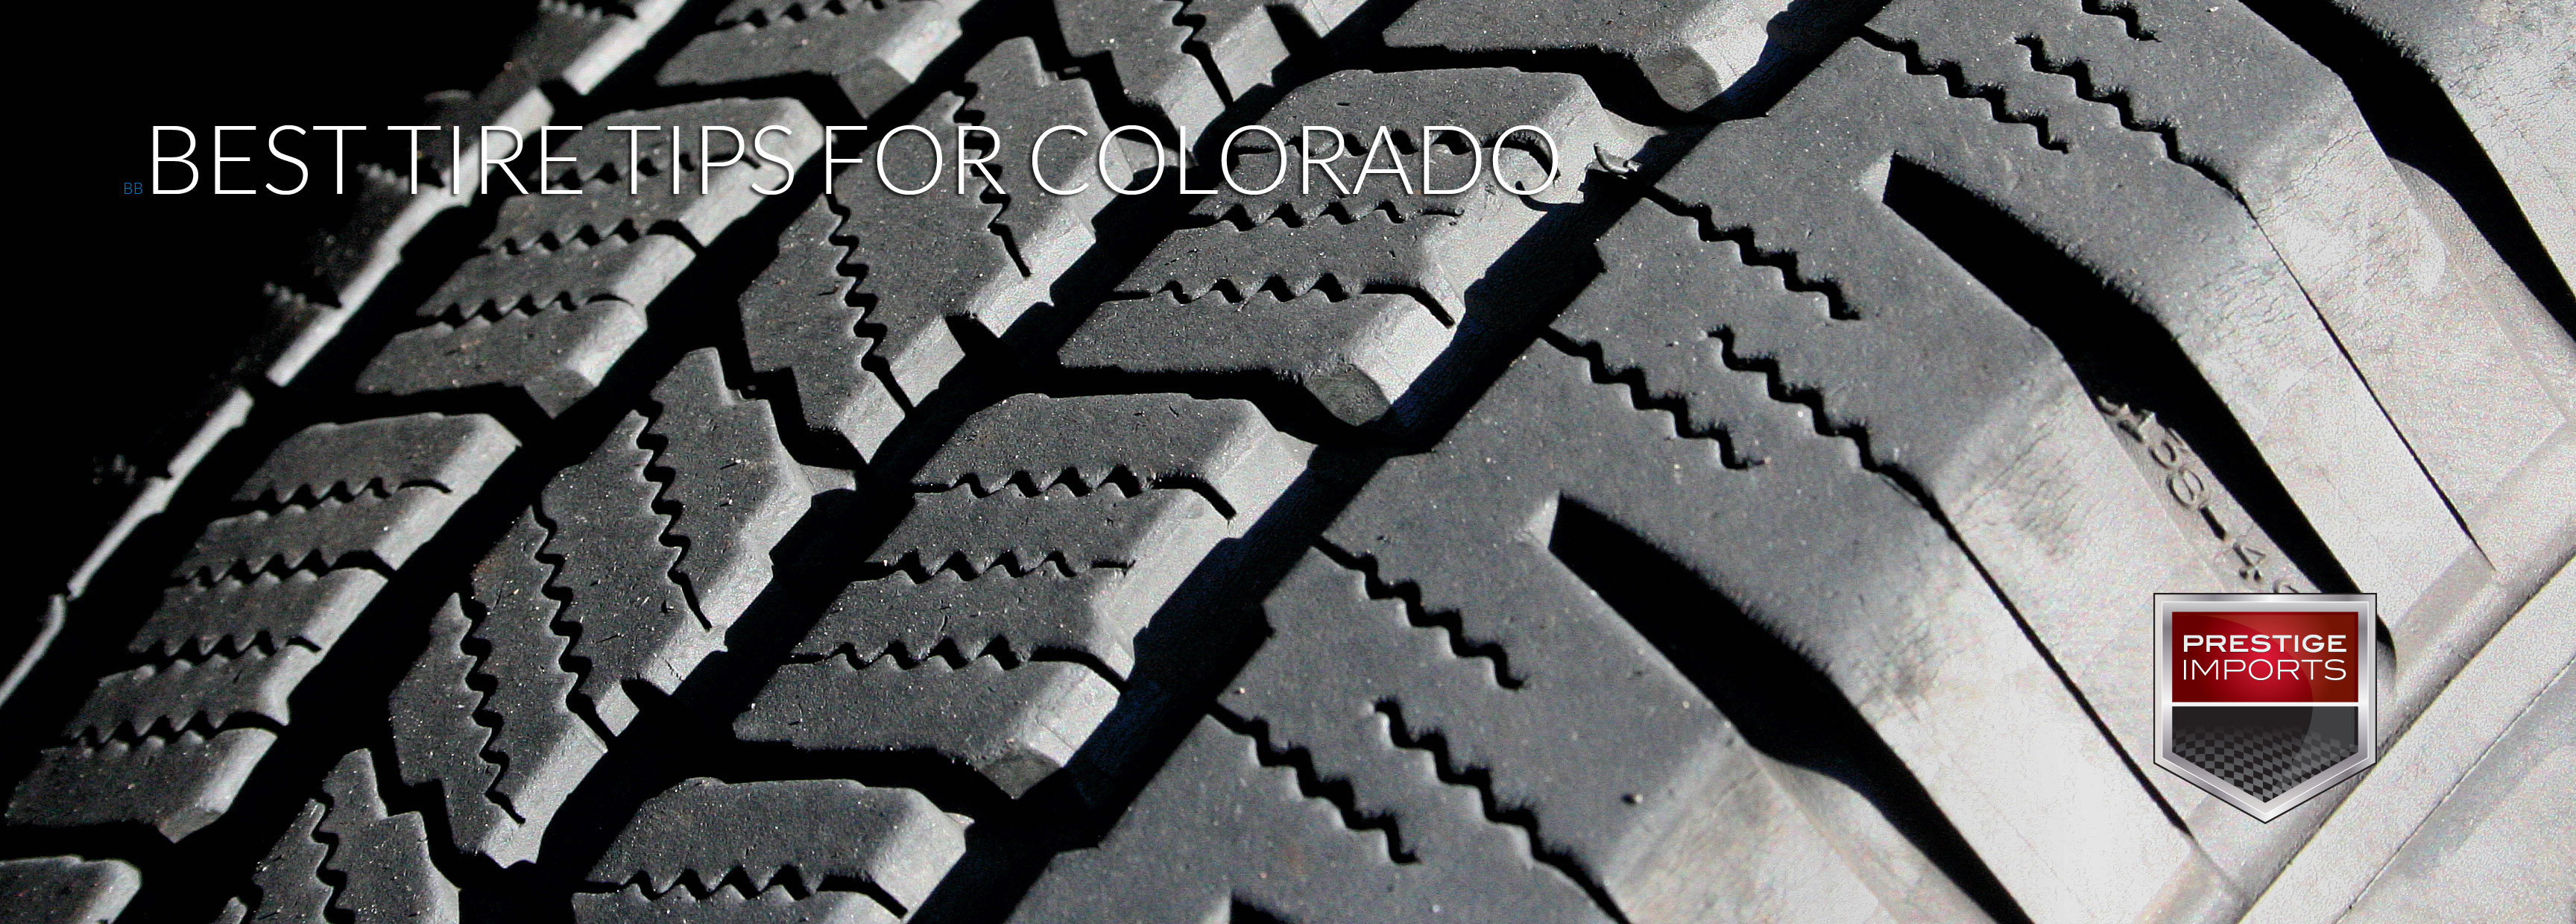 Best Tire Tips For Colorado Drivers